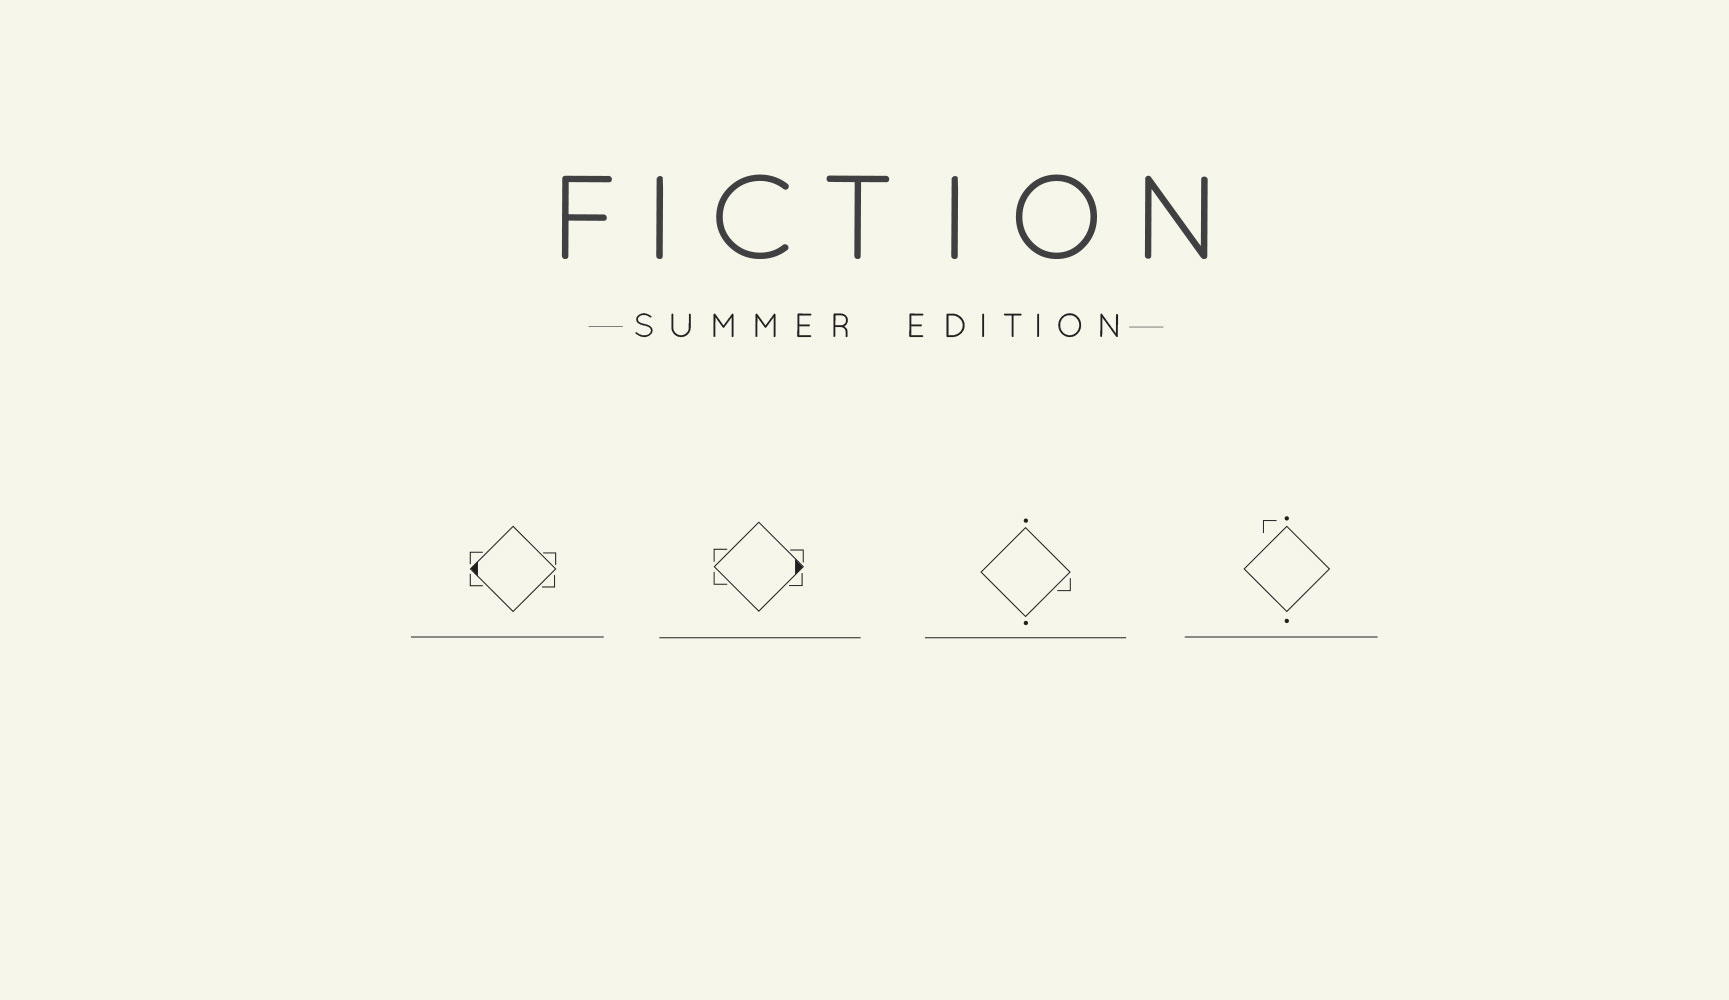 Fiction Header Image